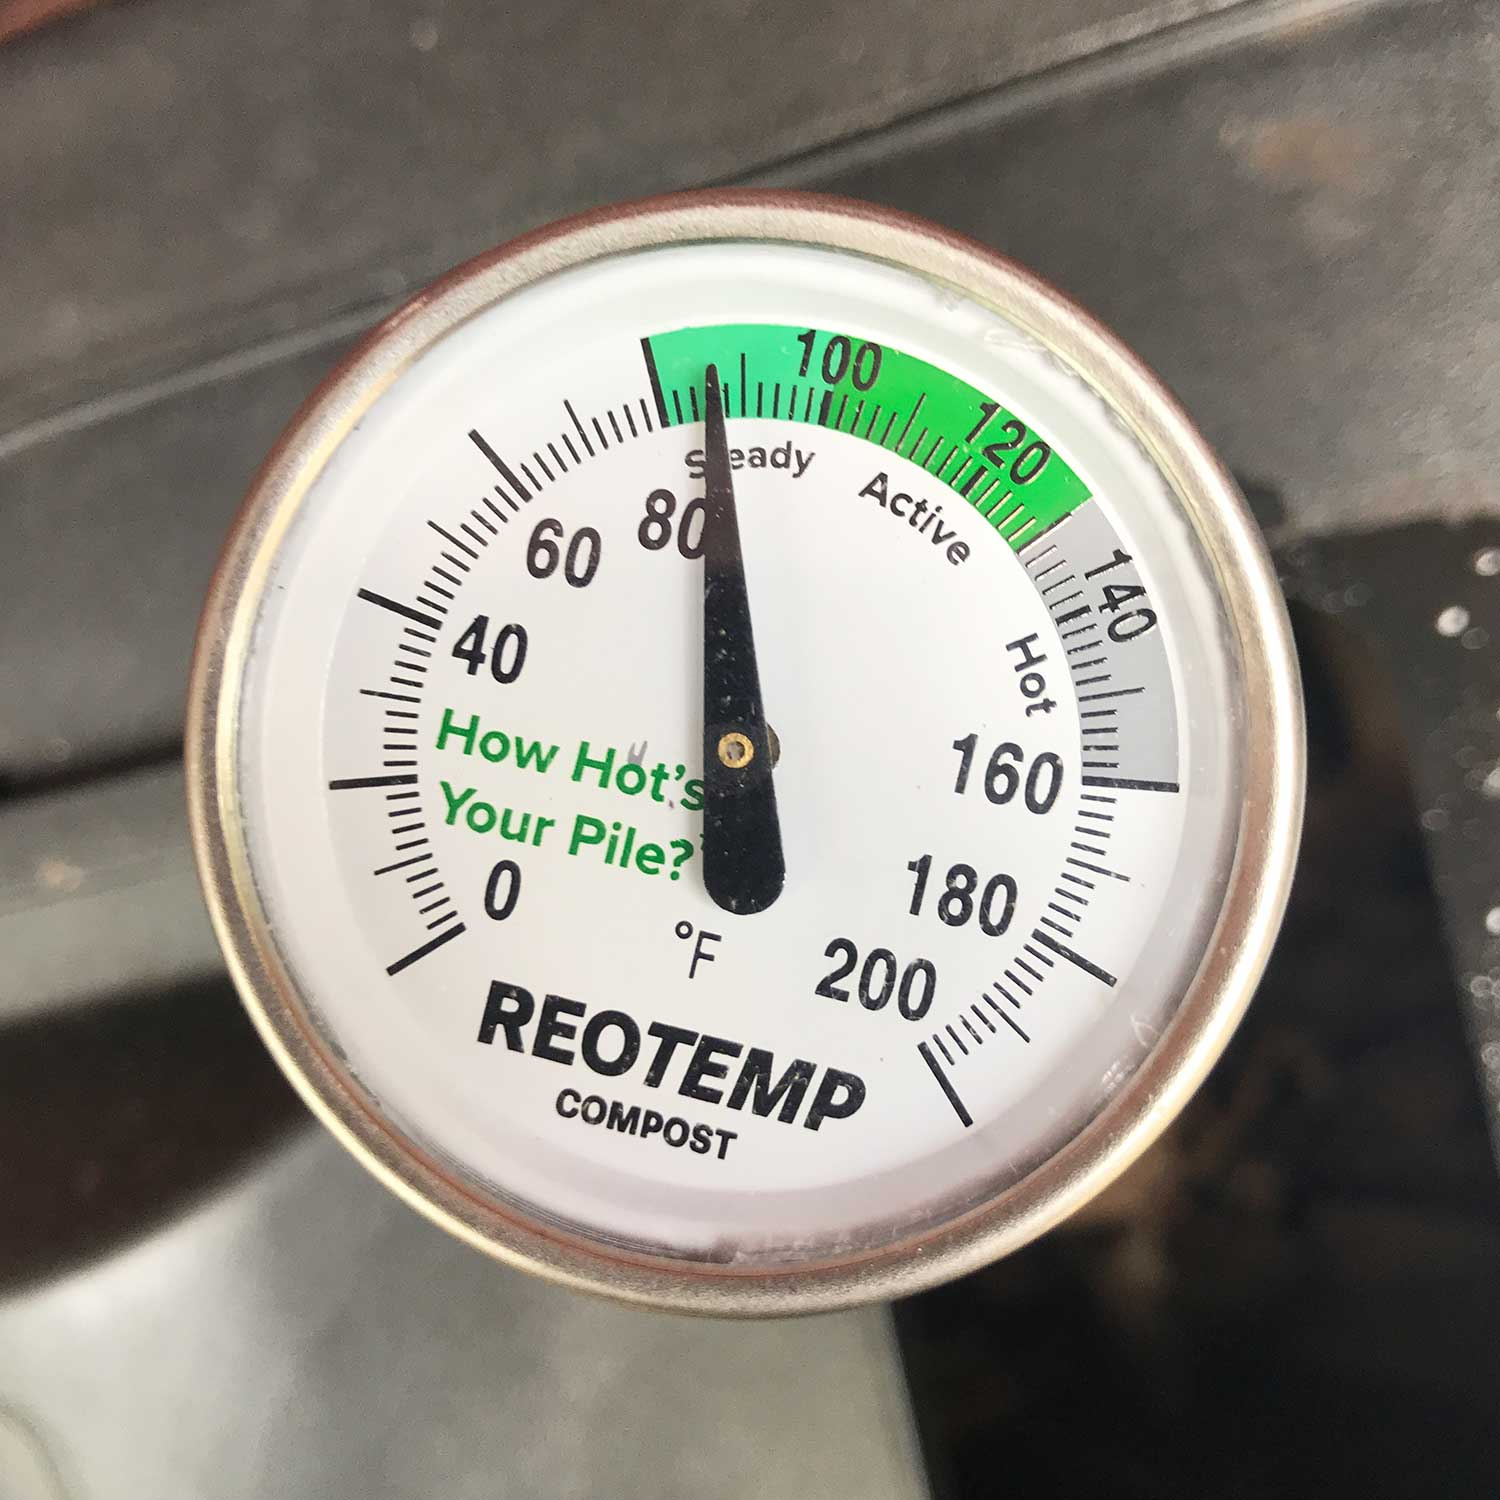 Image of a compost thermometer